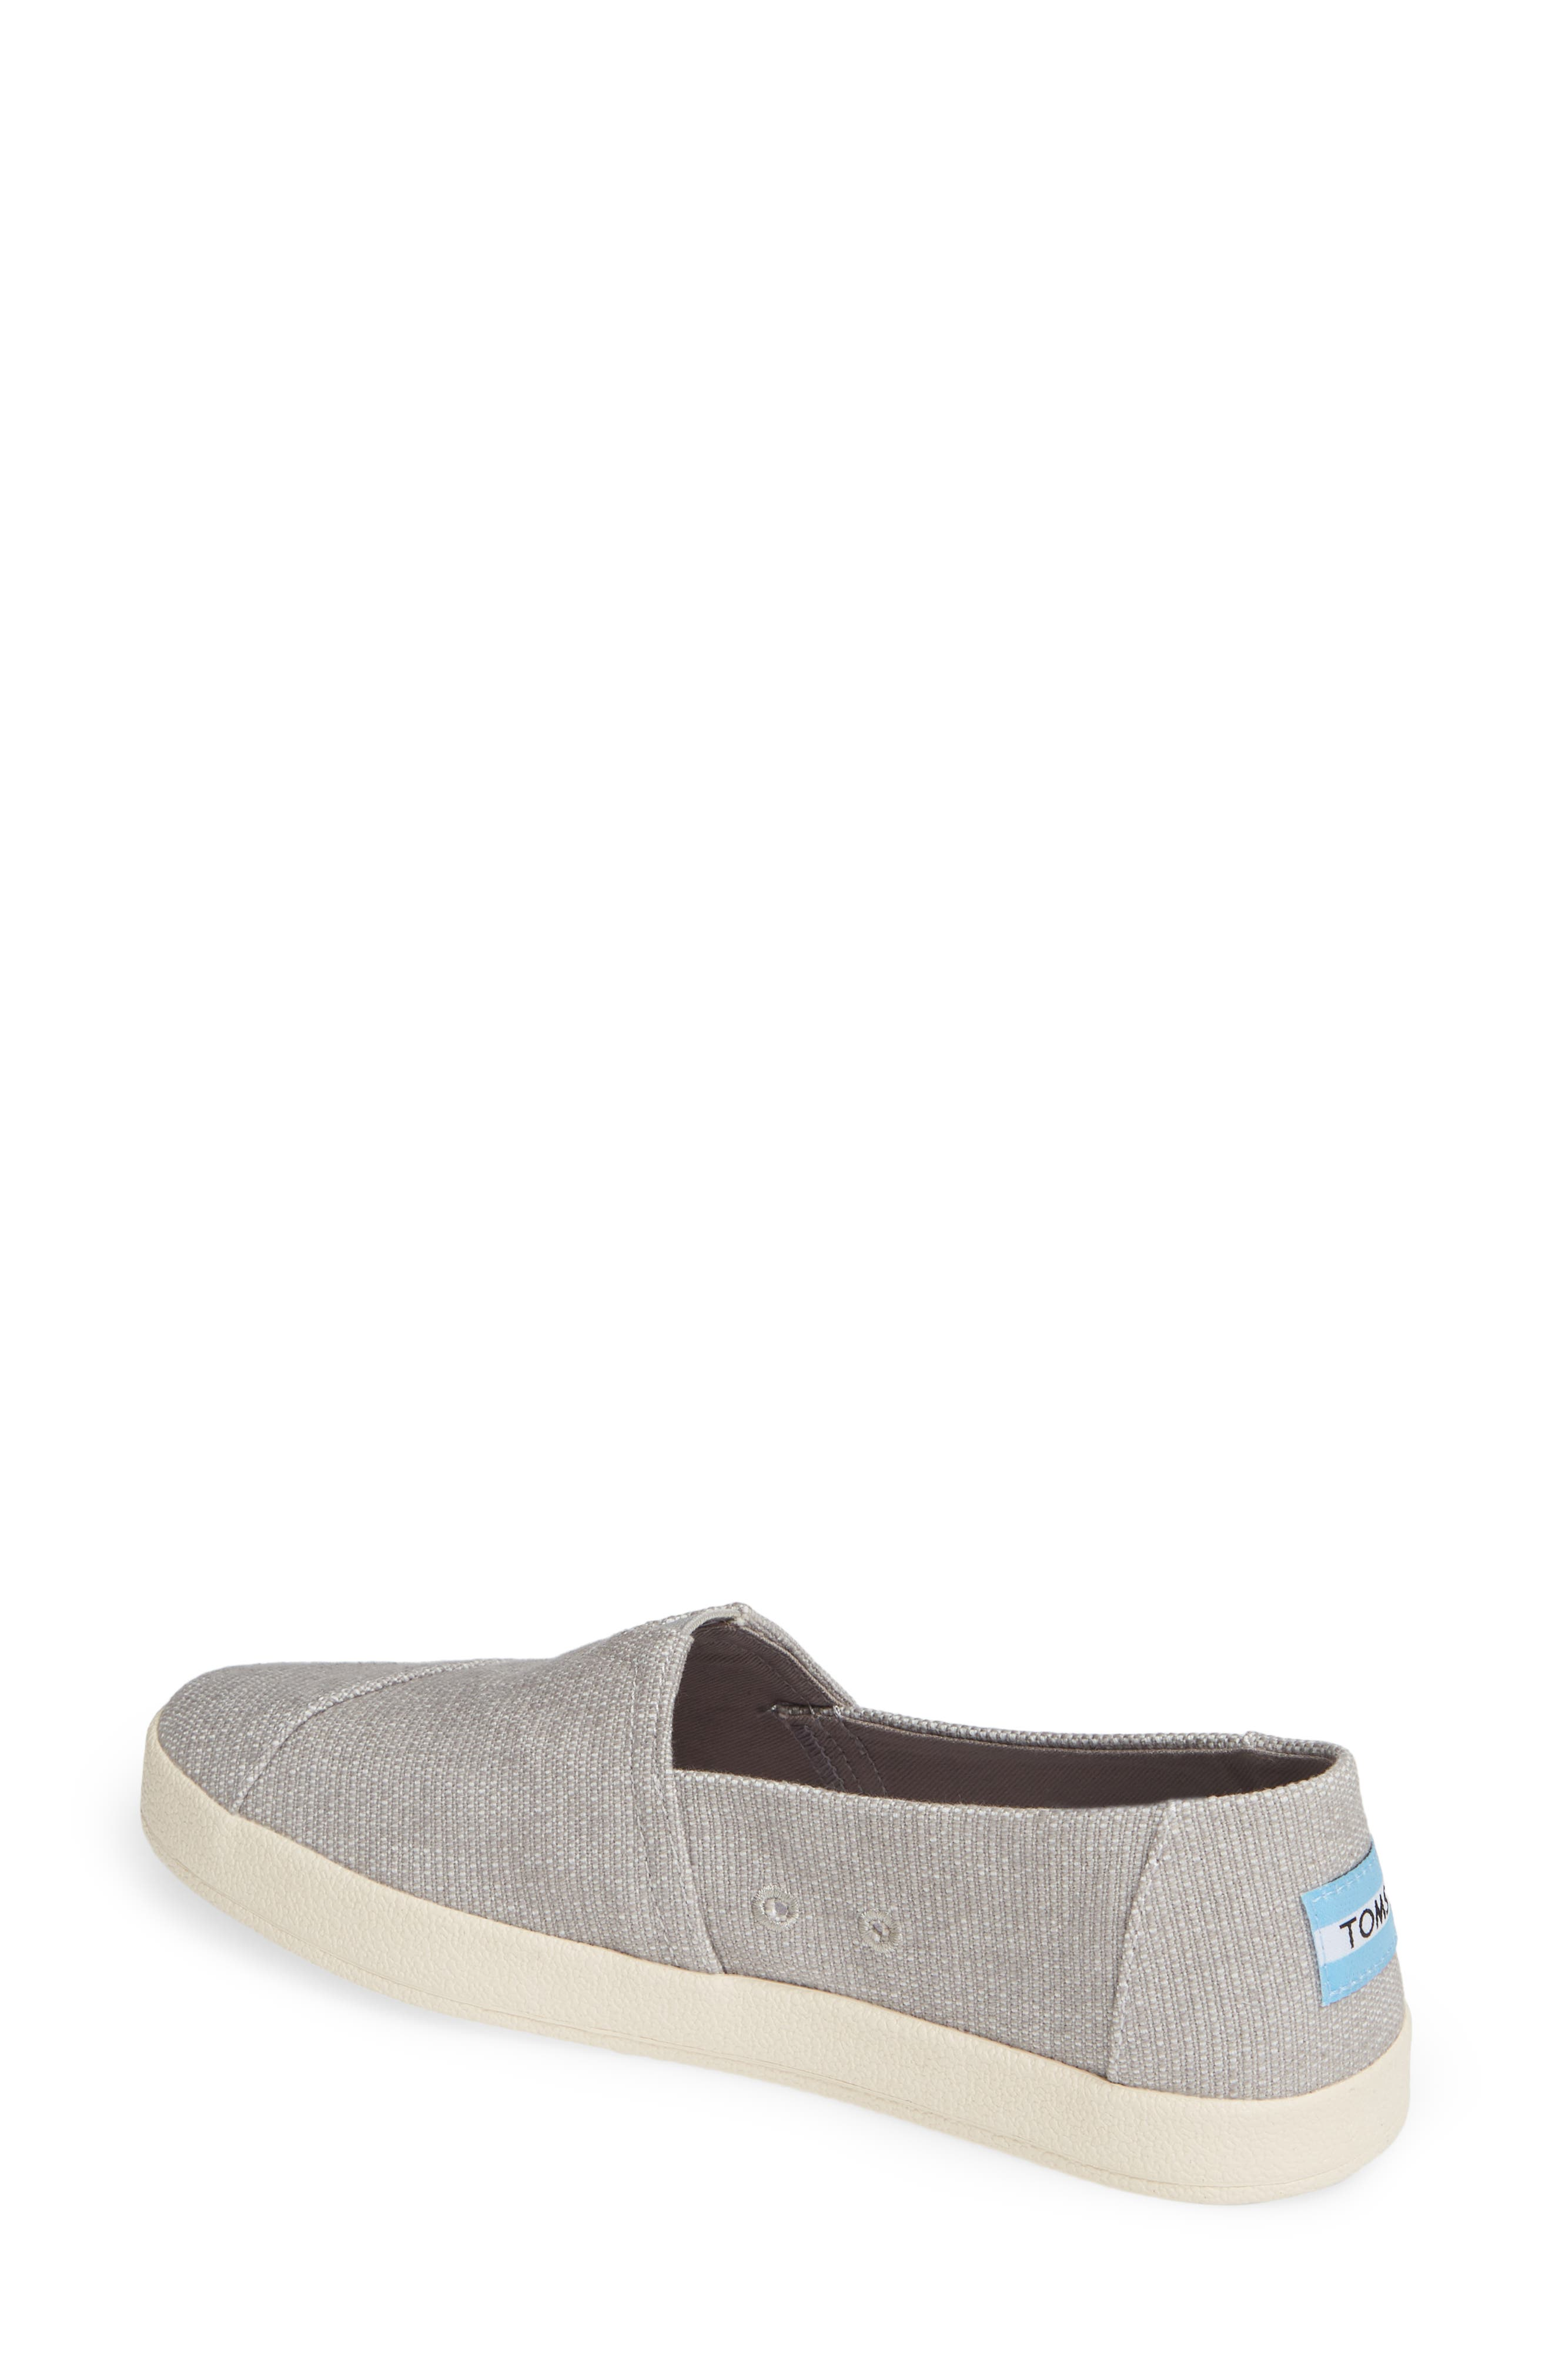 TOMS, Avalon Slip-On Sneaker, Alternate thumbnail 2, color, DRIZZLE GREY CANVAS